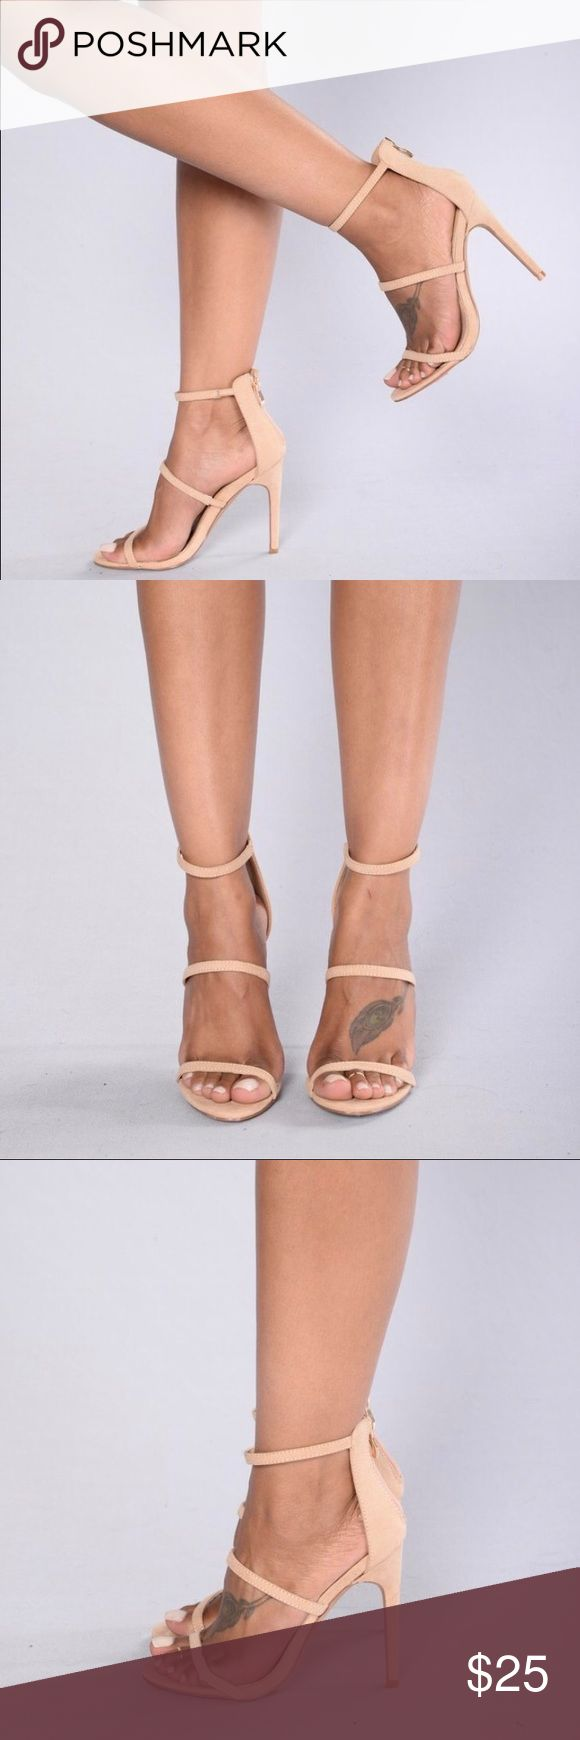 Nude Zip Up Heeled Sandals Cute nude zip up heels, never worn, 4.25 in. heel Fashion Nova Shoes Heels